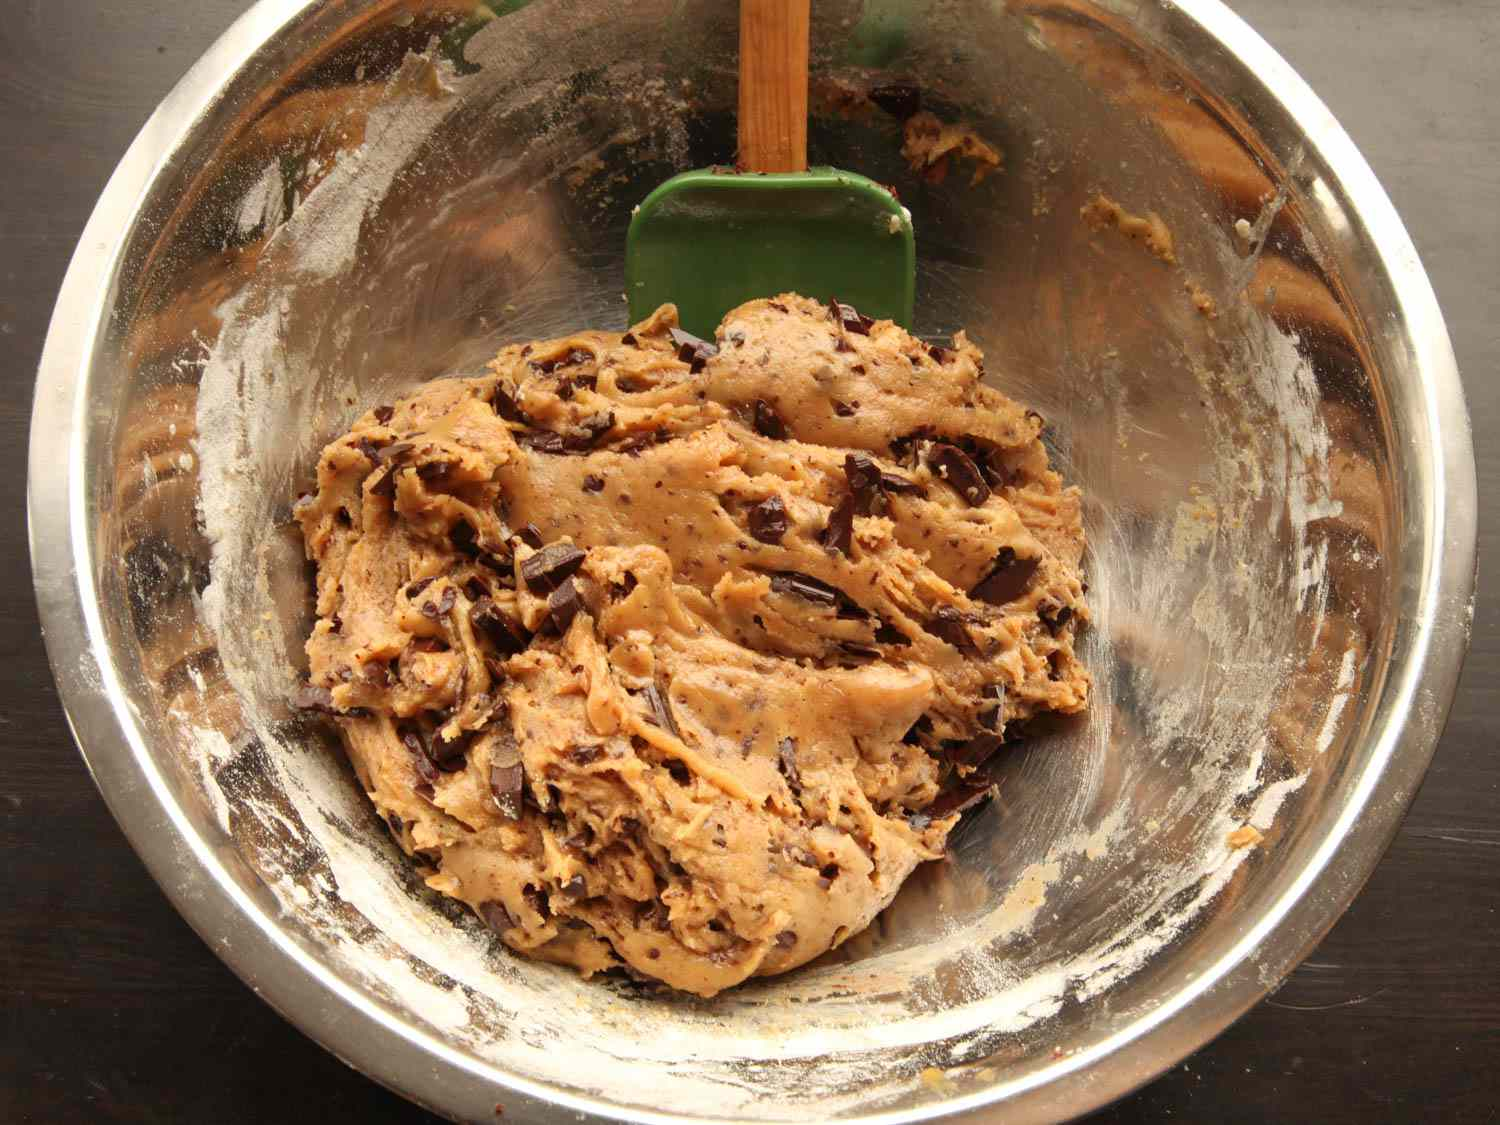 Bowl of cookie dough made by over-mixing in the flour for tough, smooth-textured cookie.